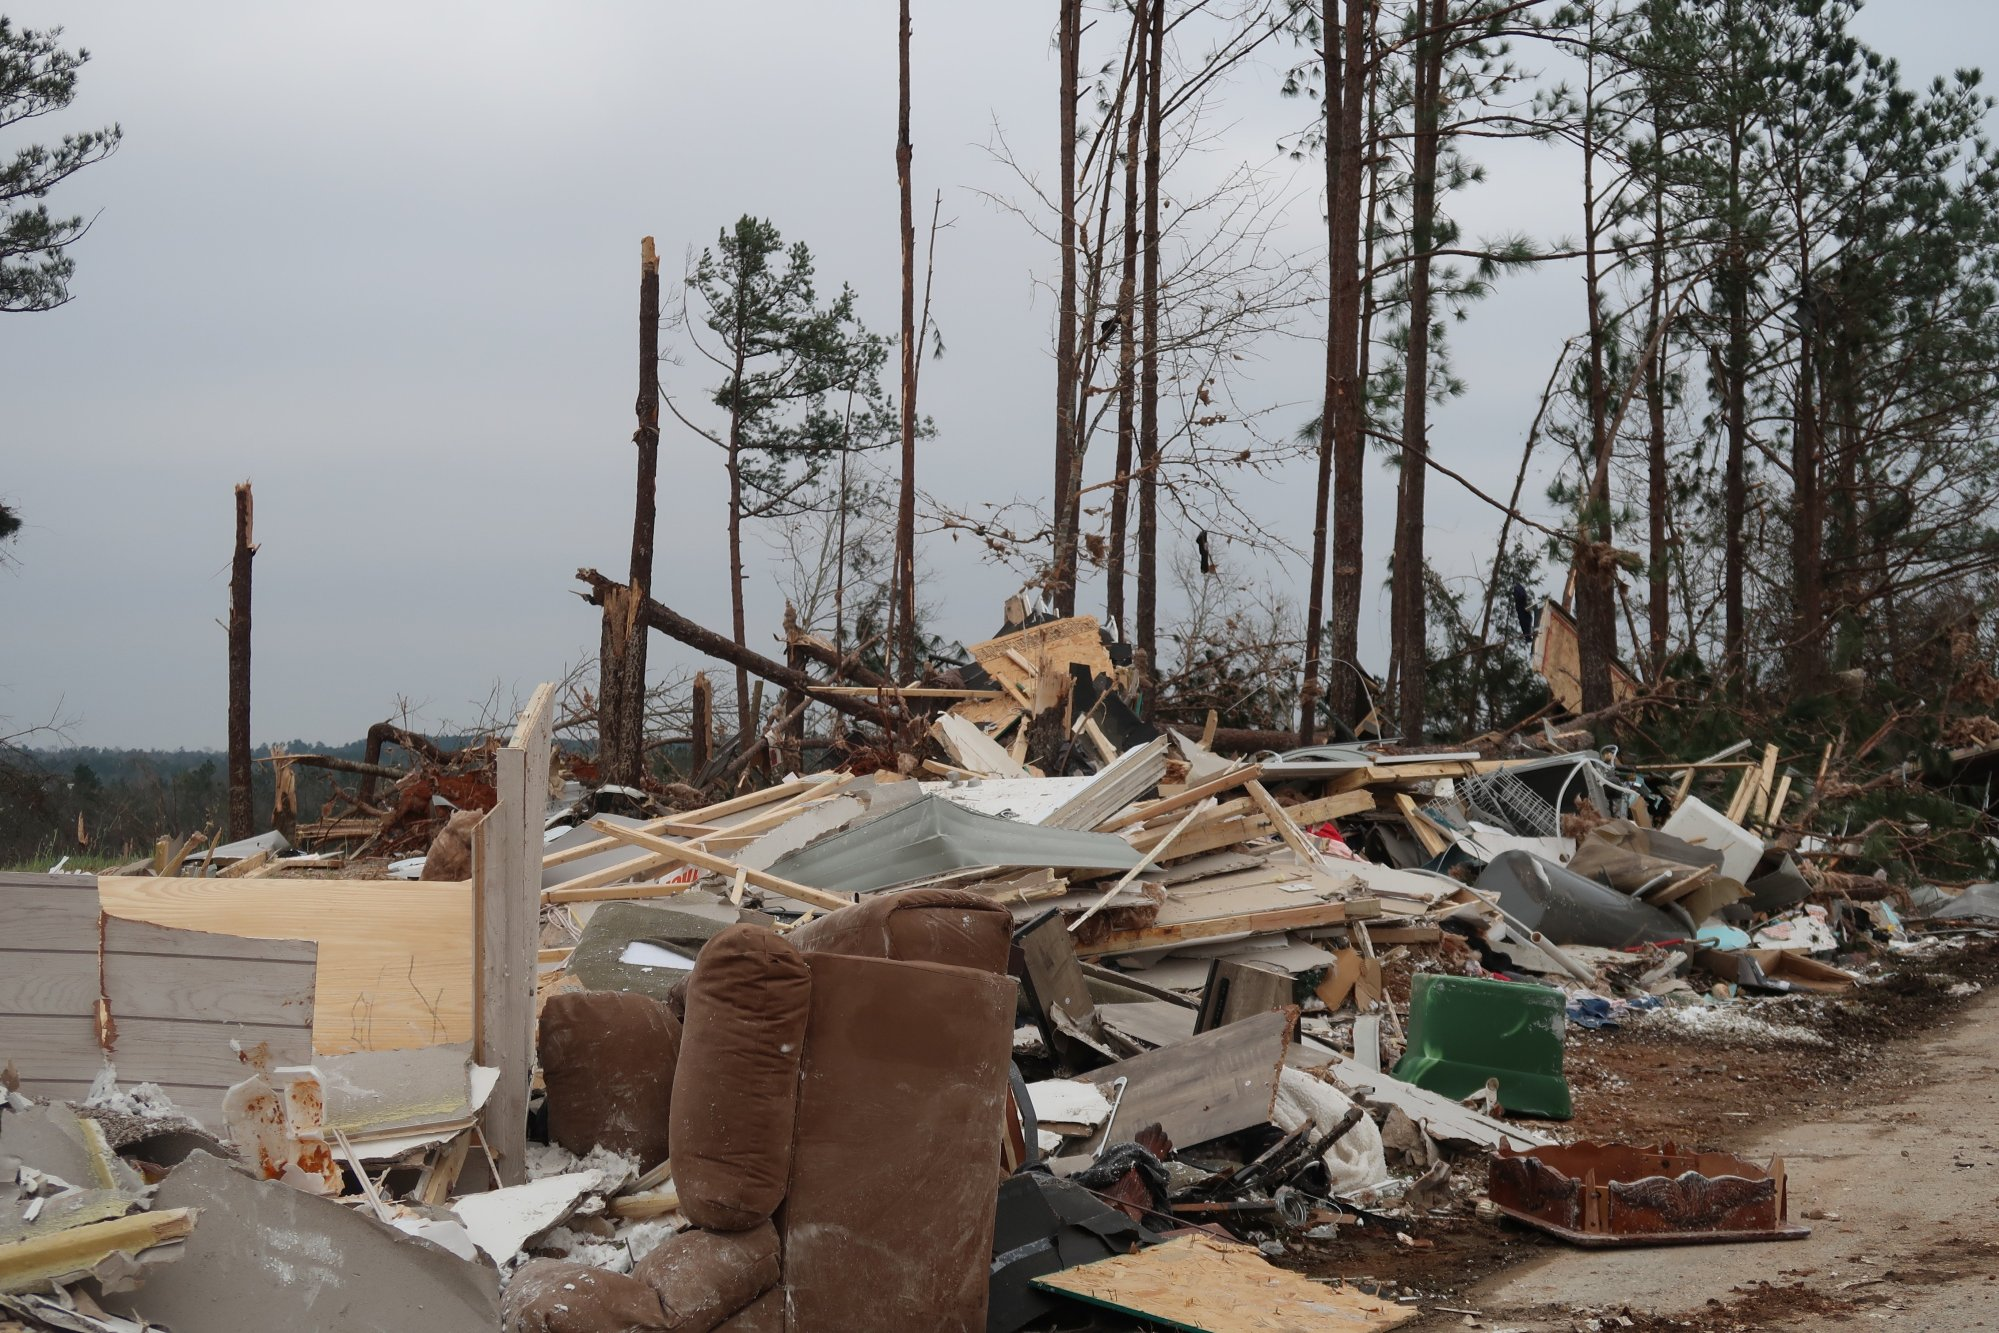 Yellow insulation is seen strewn across trees and debris and bricks that were once the foundation for mobile homes are scattered everywhere.